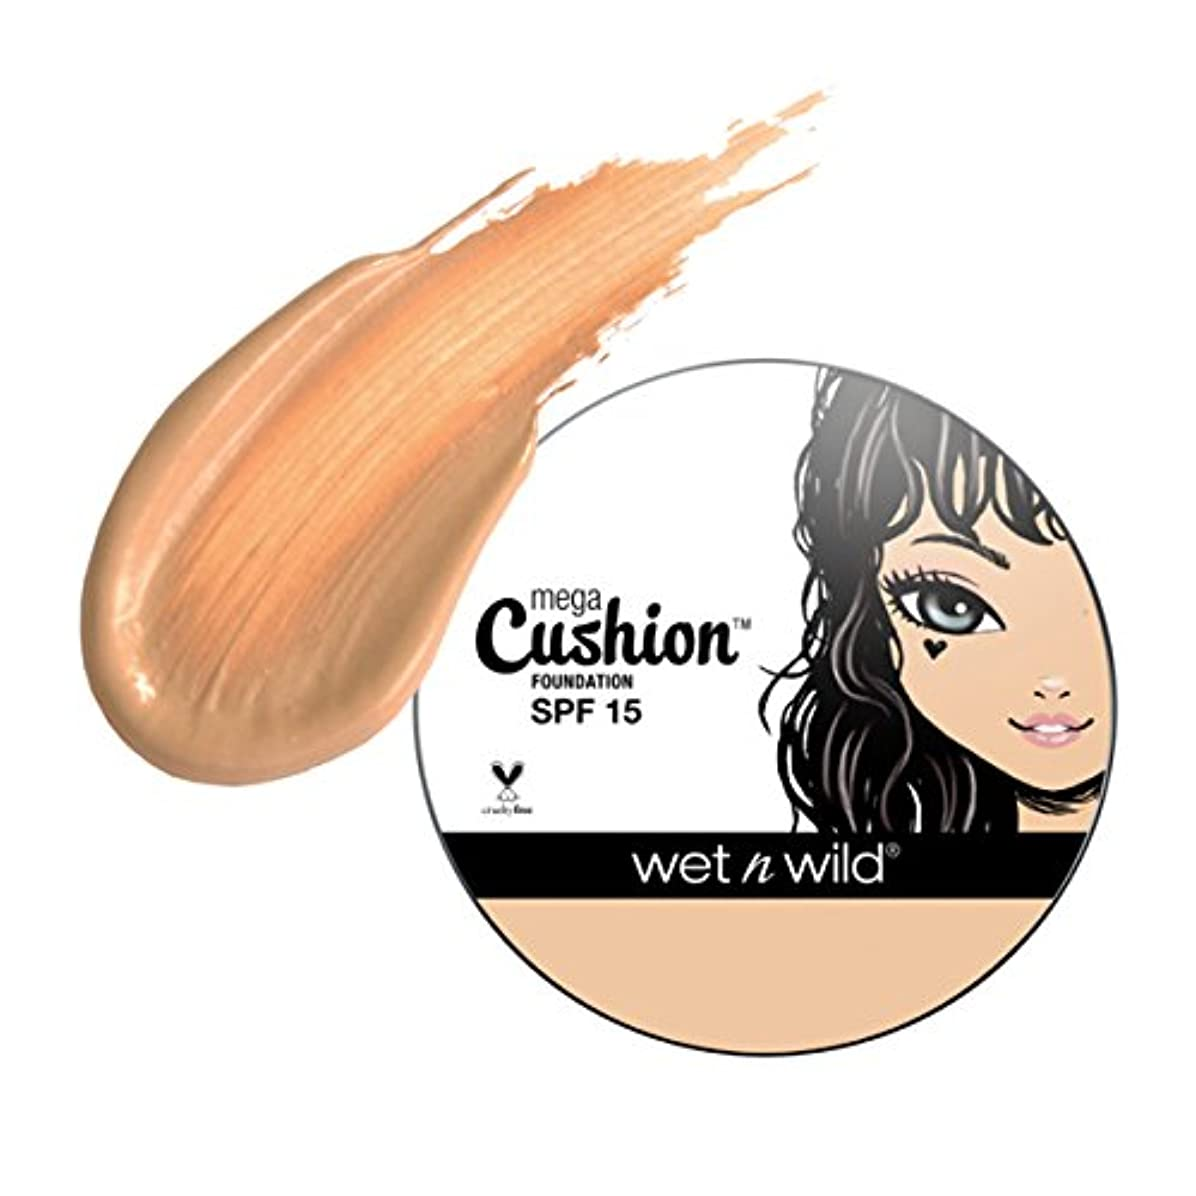 確かめるリボンマキシム(3 Pack) WET N WILD MegaCushion Foundation SPF 15 - Buff Beige (並行輸入品)